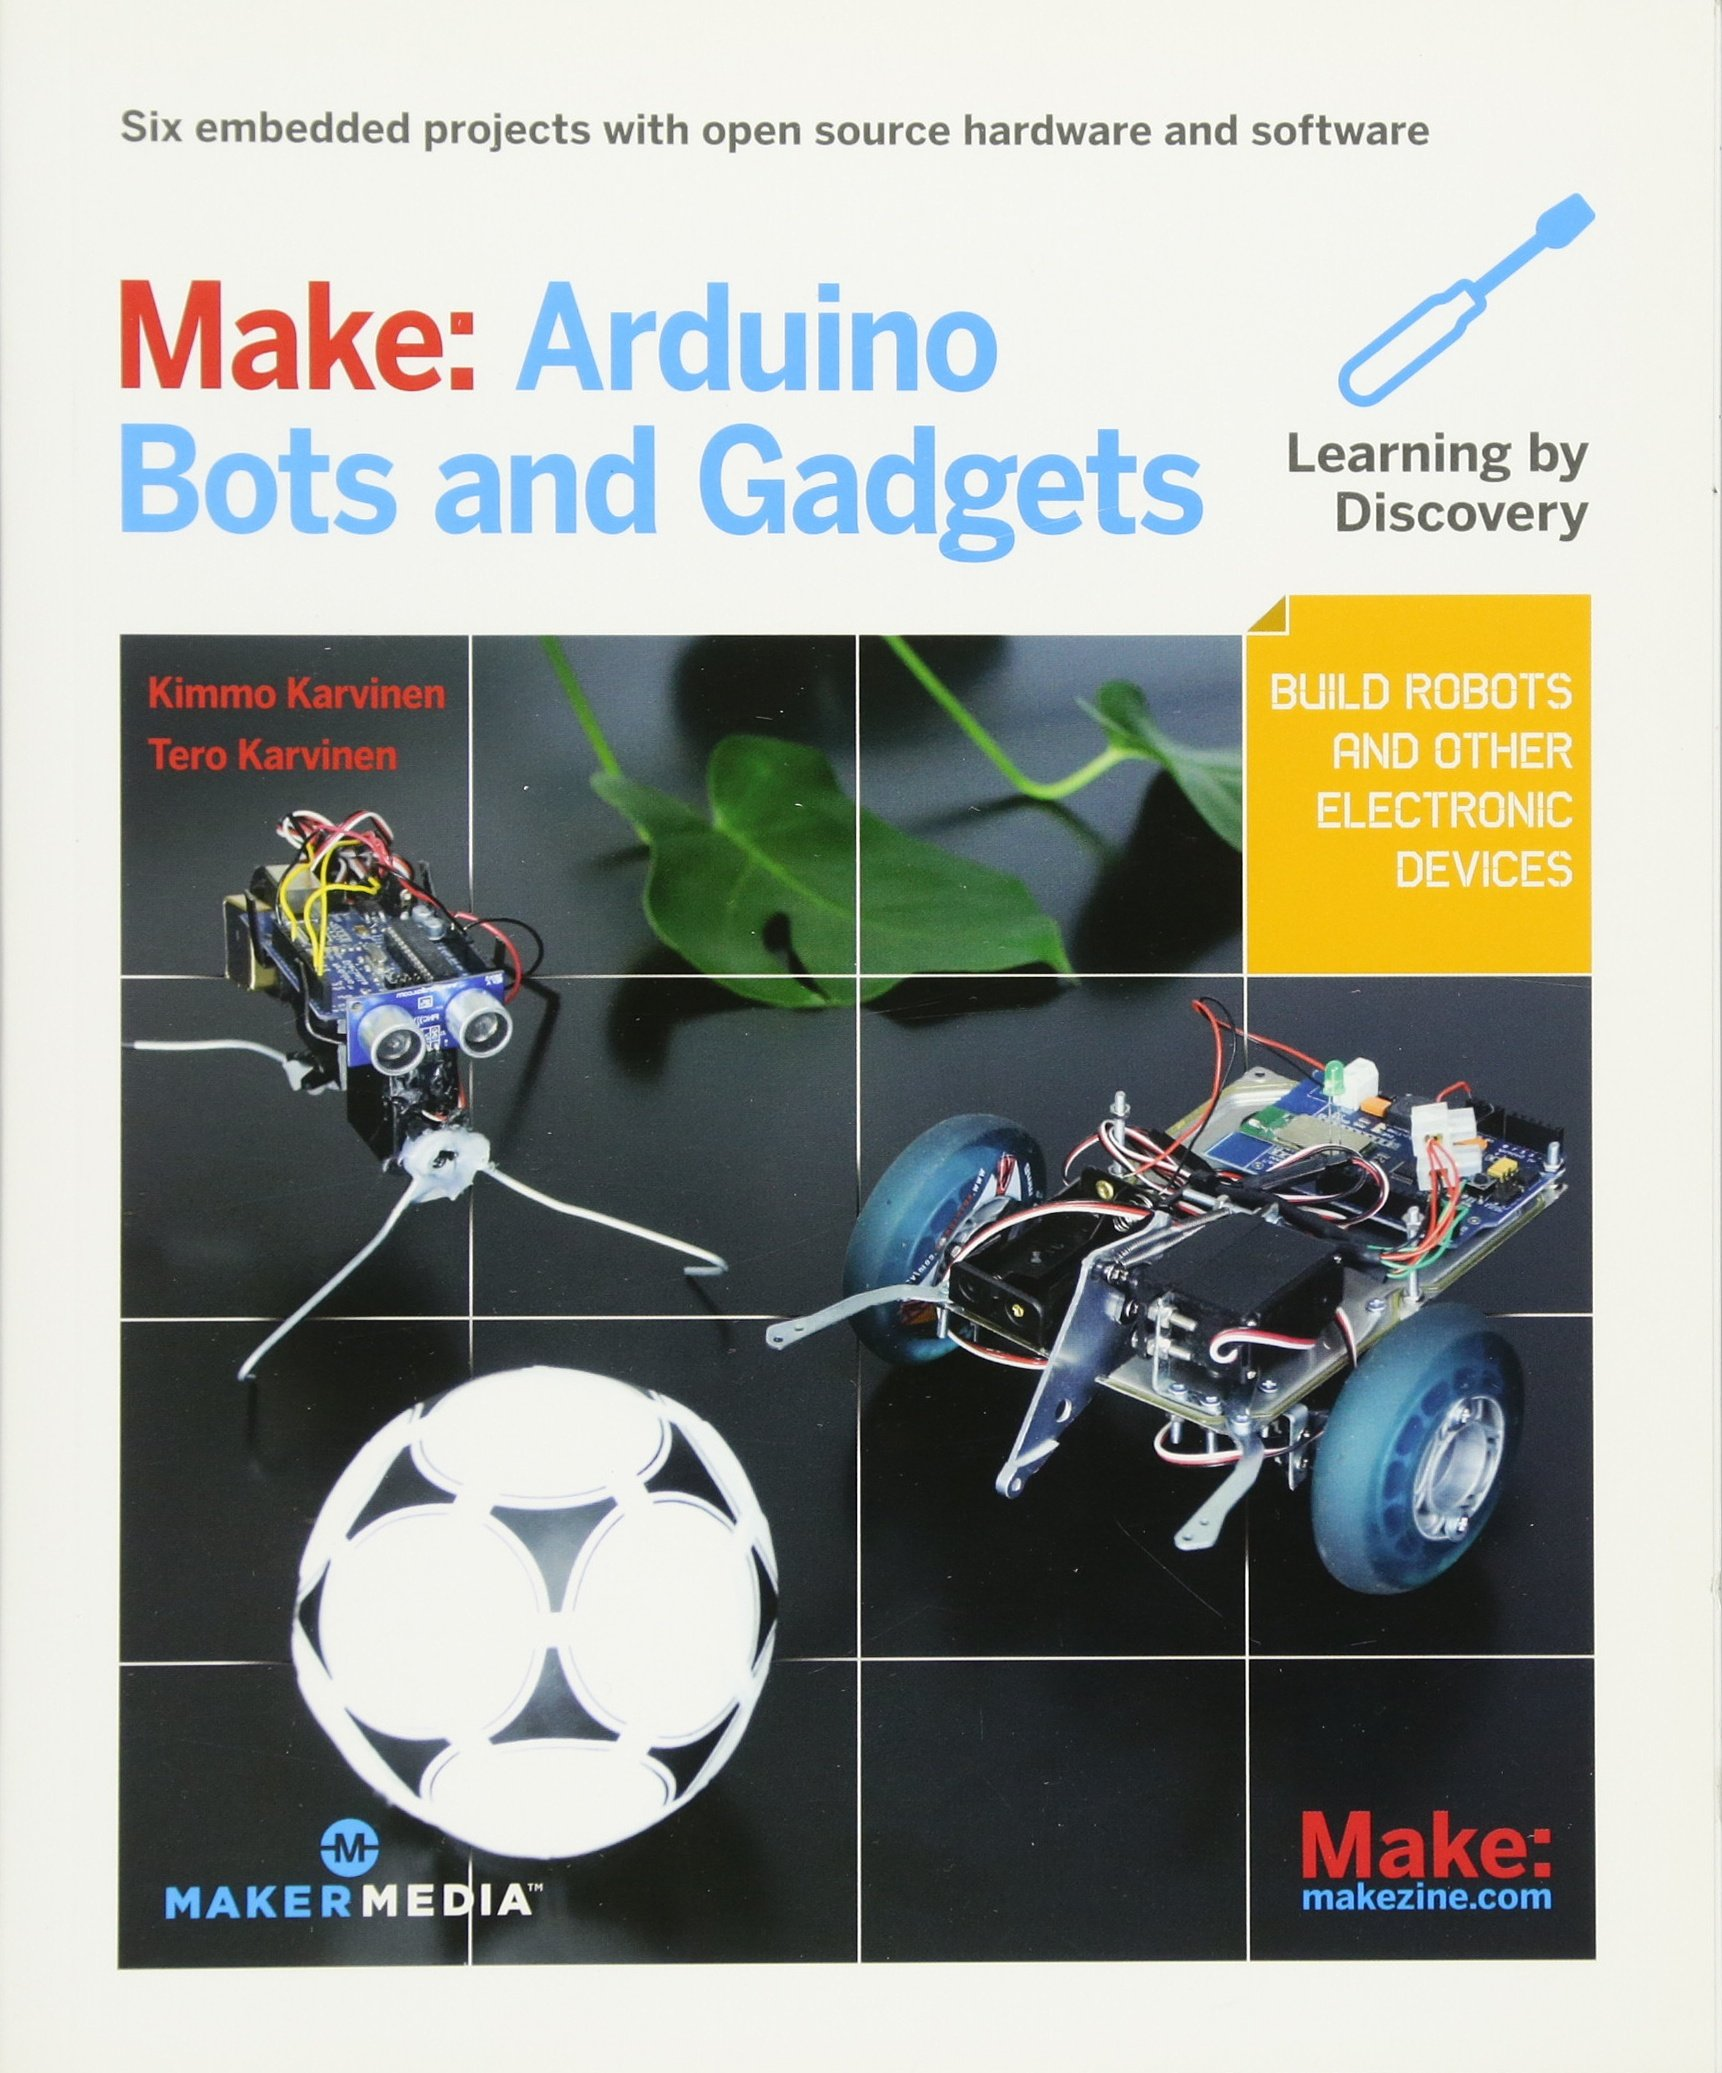 Make: Arduino Bots and Gadgets: Six Embedded Projects with Open Source Hardware and Software (Learning by Discovery) by Brand: Maker Media, Inc